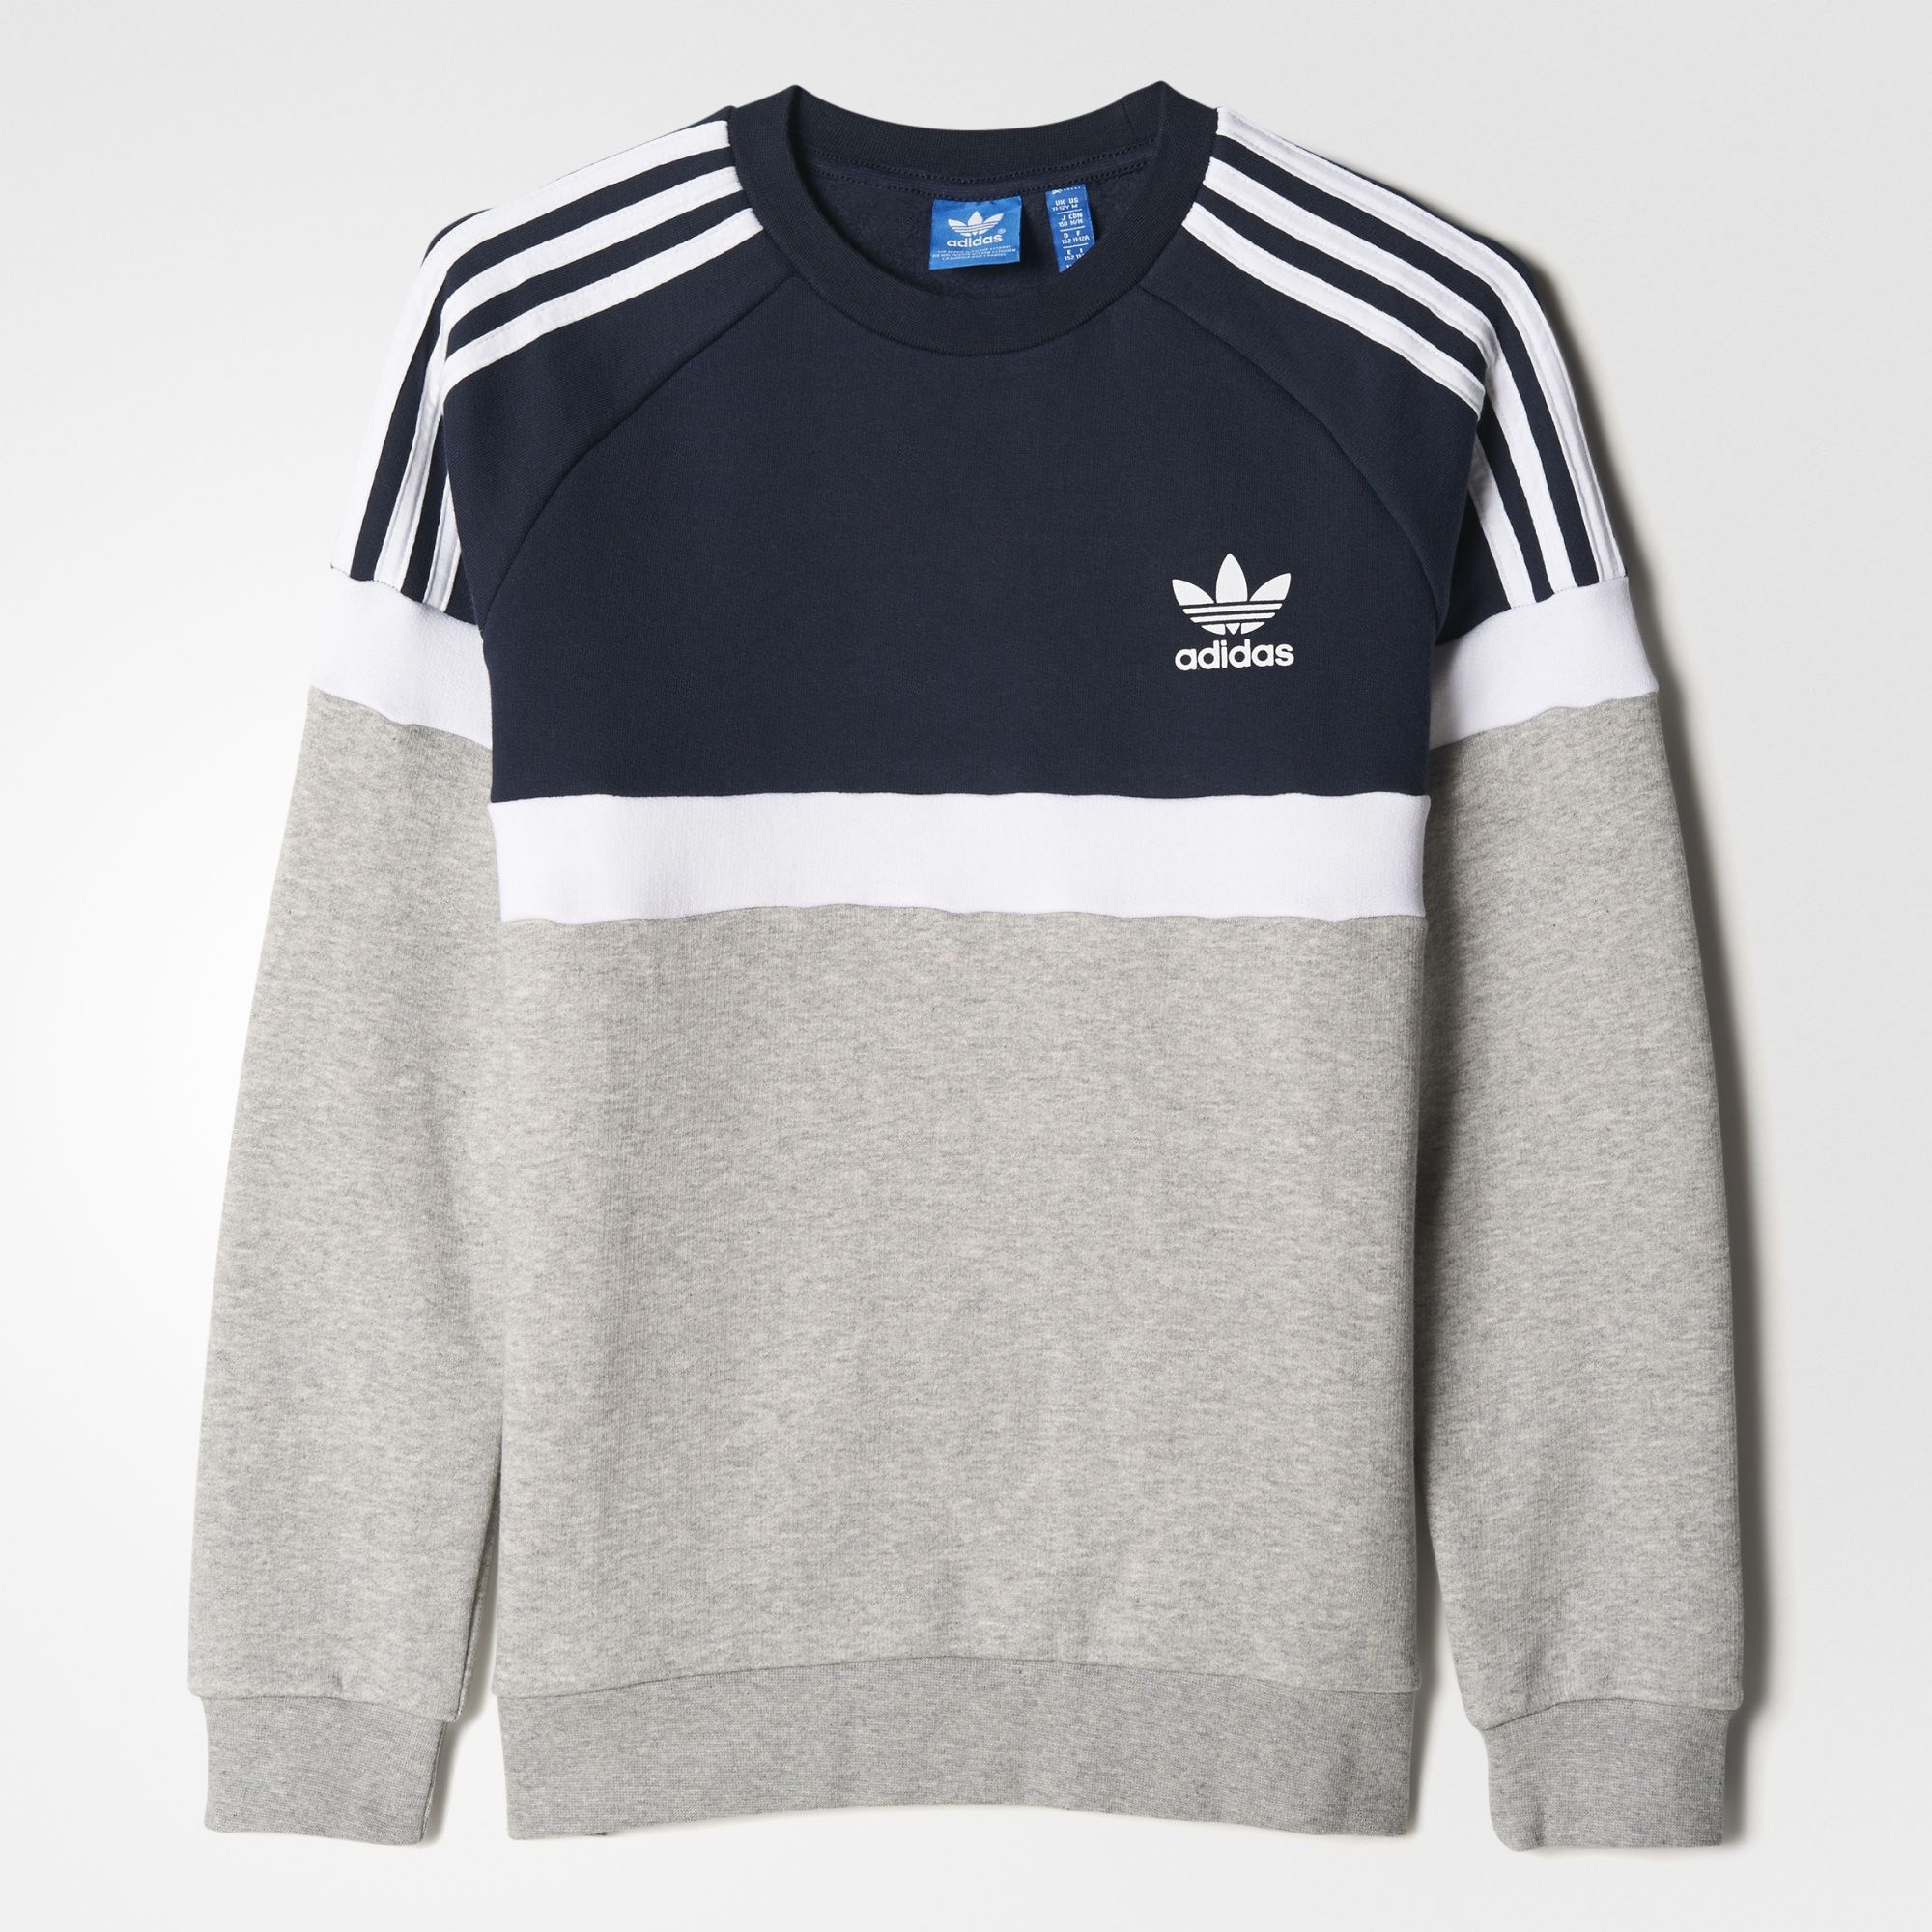 adidas - Colorblock Sweatshirt | Sweaters | Pinterest | Adidas and ...